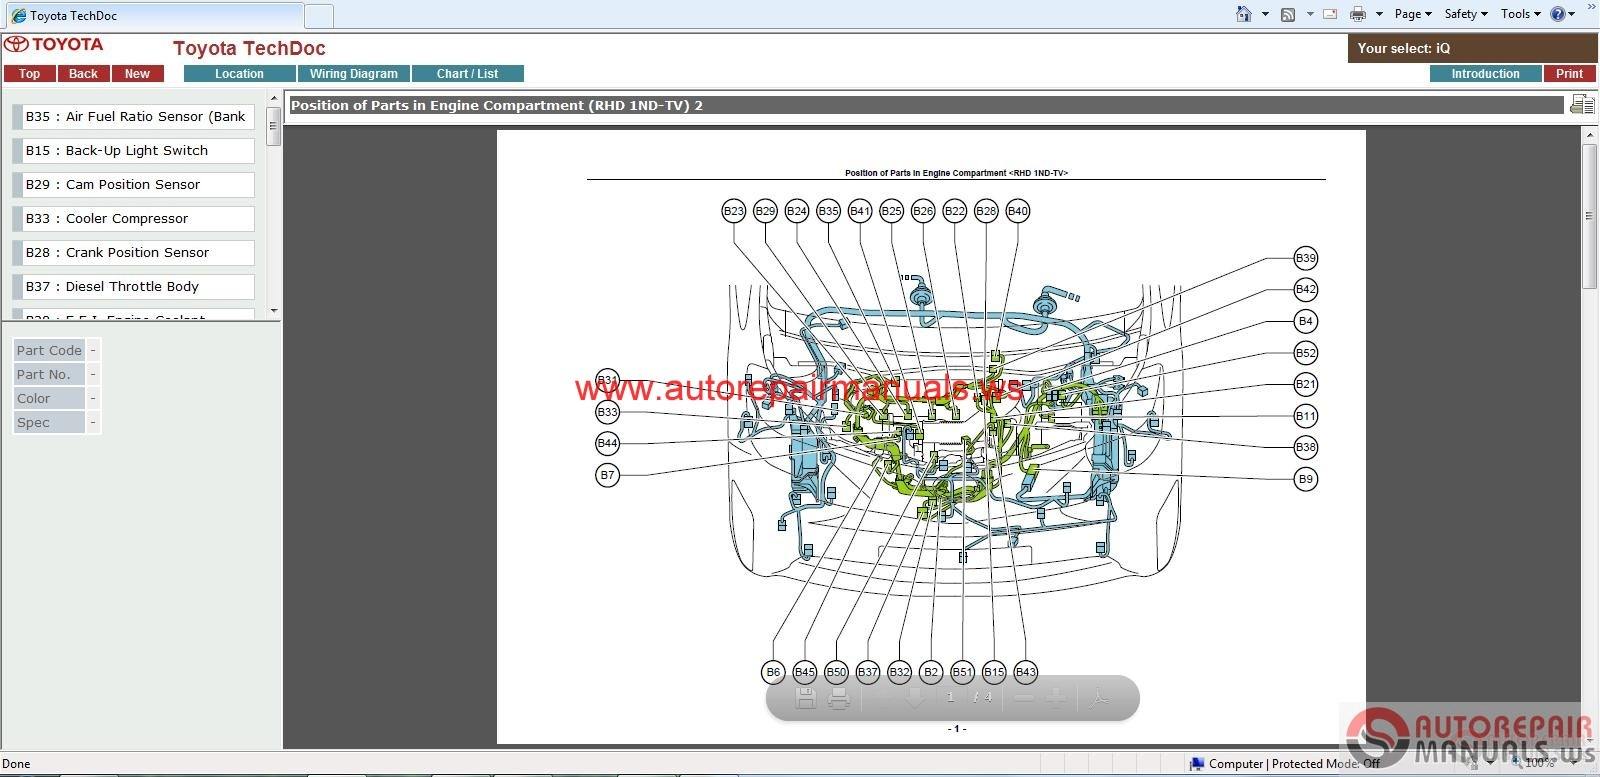 Toyota Iq Wiring Diagram | Wiring Liry on toyota alternator wiring, toyota wiring color codes, toyota flasher relay, toyota ignition diagram, toyota diagrams online, toyota shop manual, toyota cylinder head, toyota maintenance schedule, toyota 22re vacuum line diagram, toyota ecu reset, toyota wiring manual, toyota wiring harness, toyota headlight wiring, toyota electrical diagrams, toyota schematic diagrams, toyota parts diagrams, toyota shock absorber replacement, toyota truck diagrams, toyota cooling system diagram, toyota headlight adjustment,